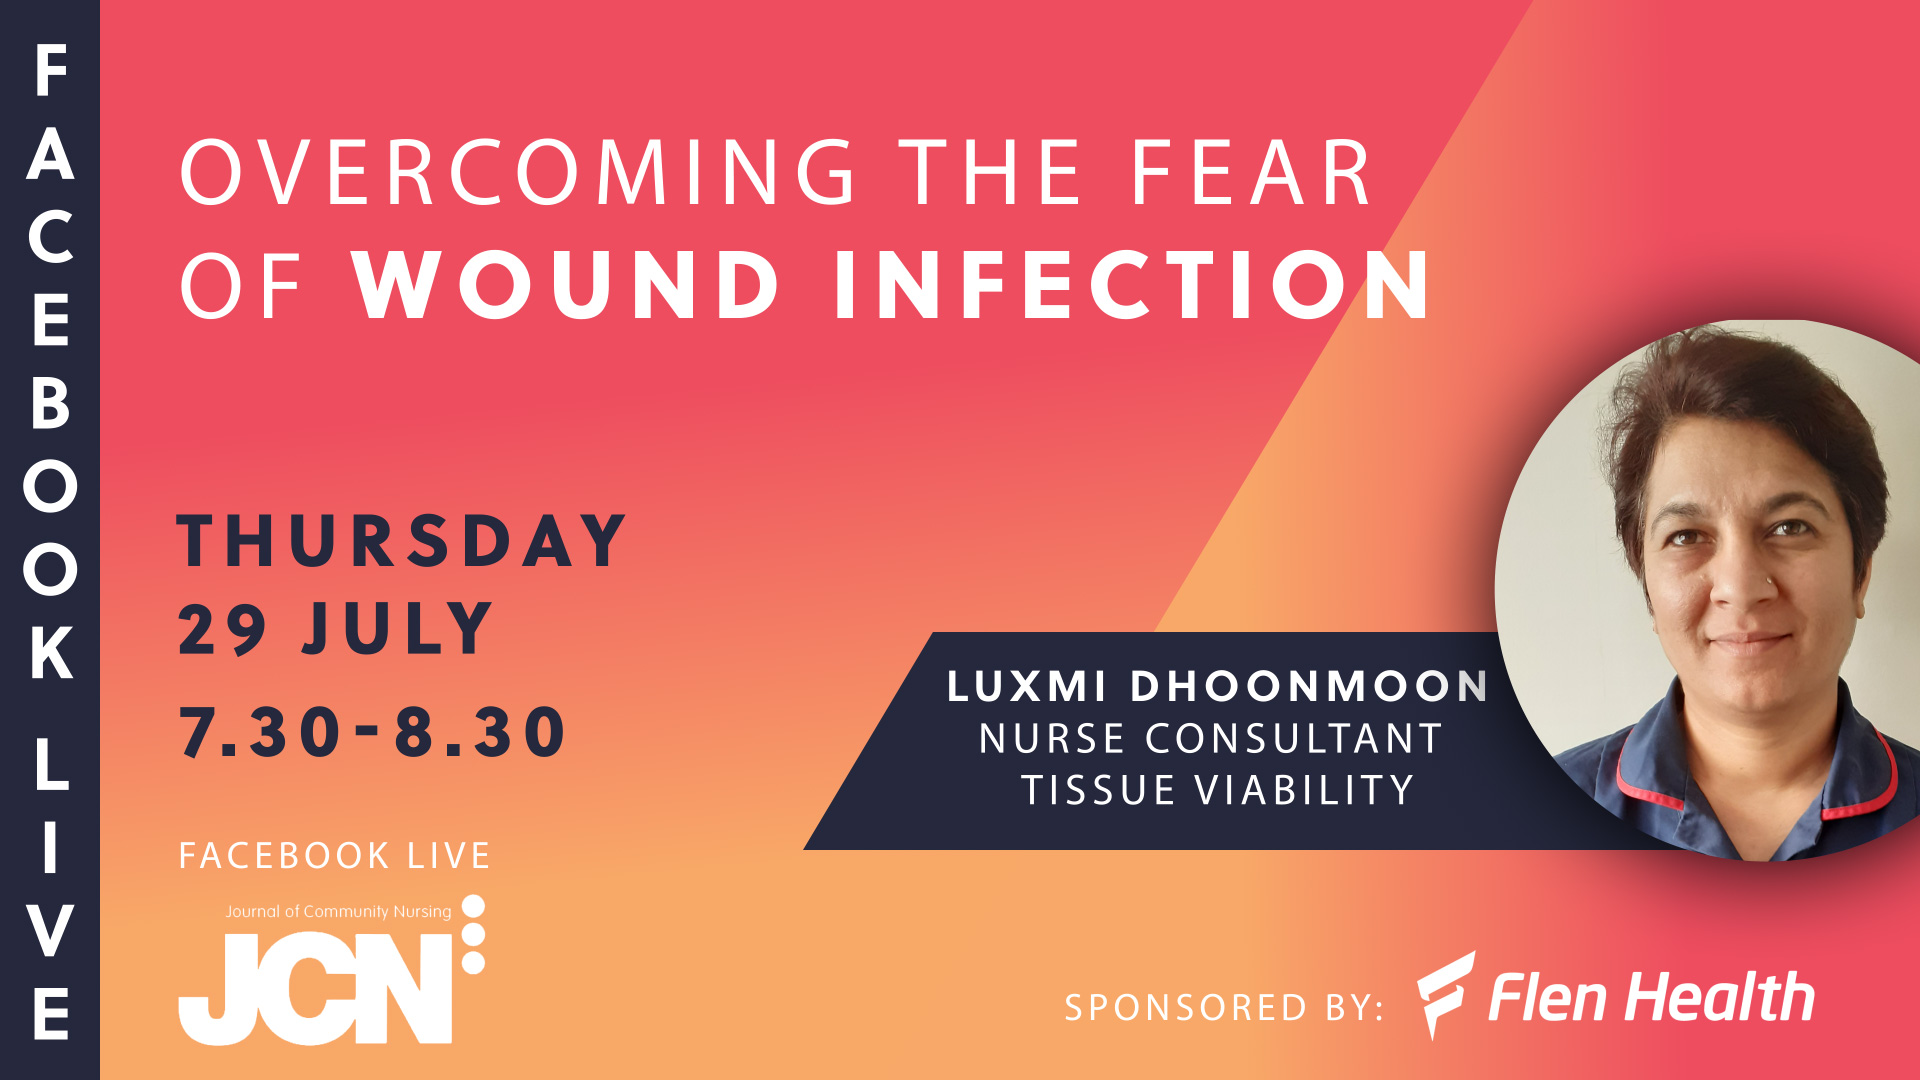 Facebook Live: Overcoming the fear of wound infection